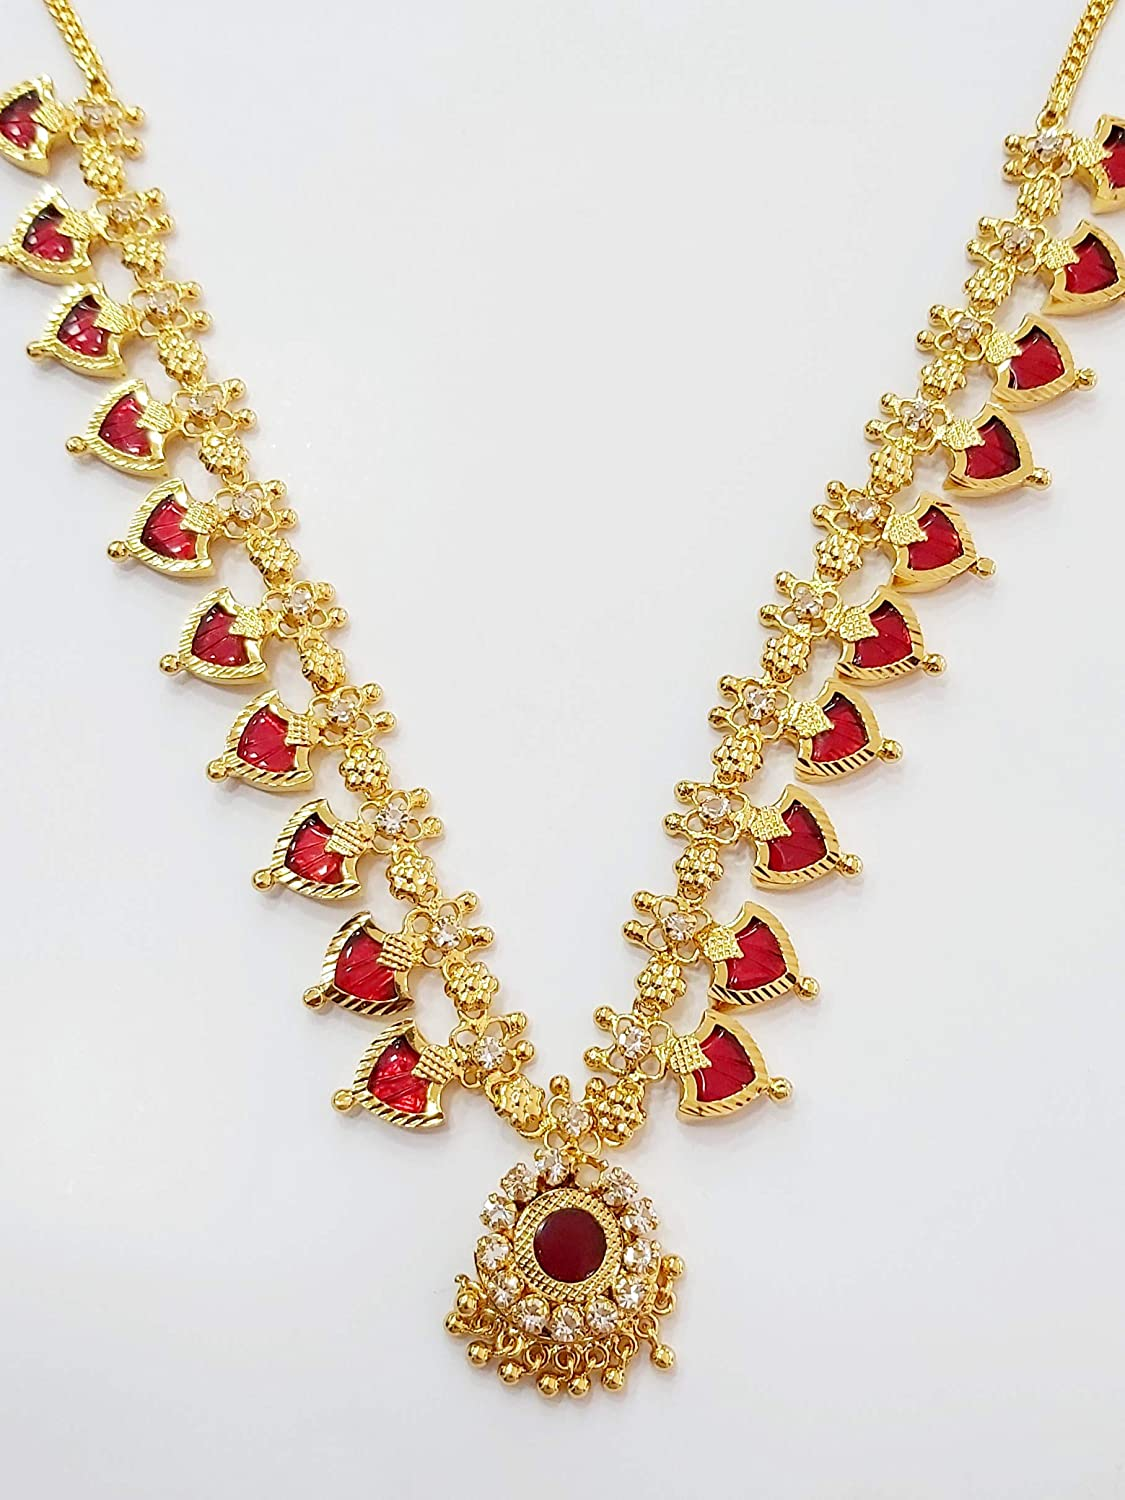 Buy Kerala Traditional 1 Gram PALAKKA Necklace with Maroon Enamel at  Amazon.in